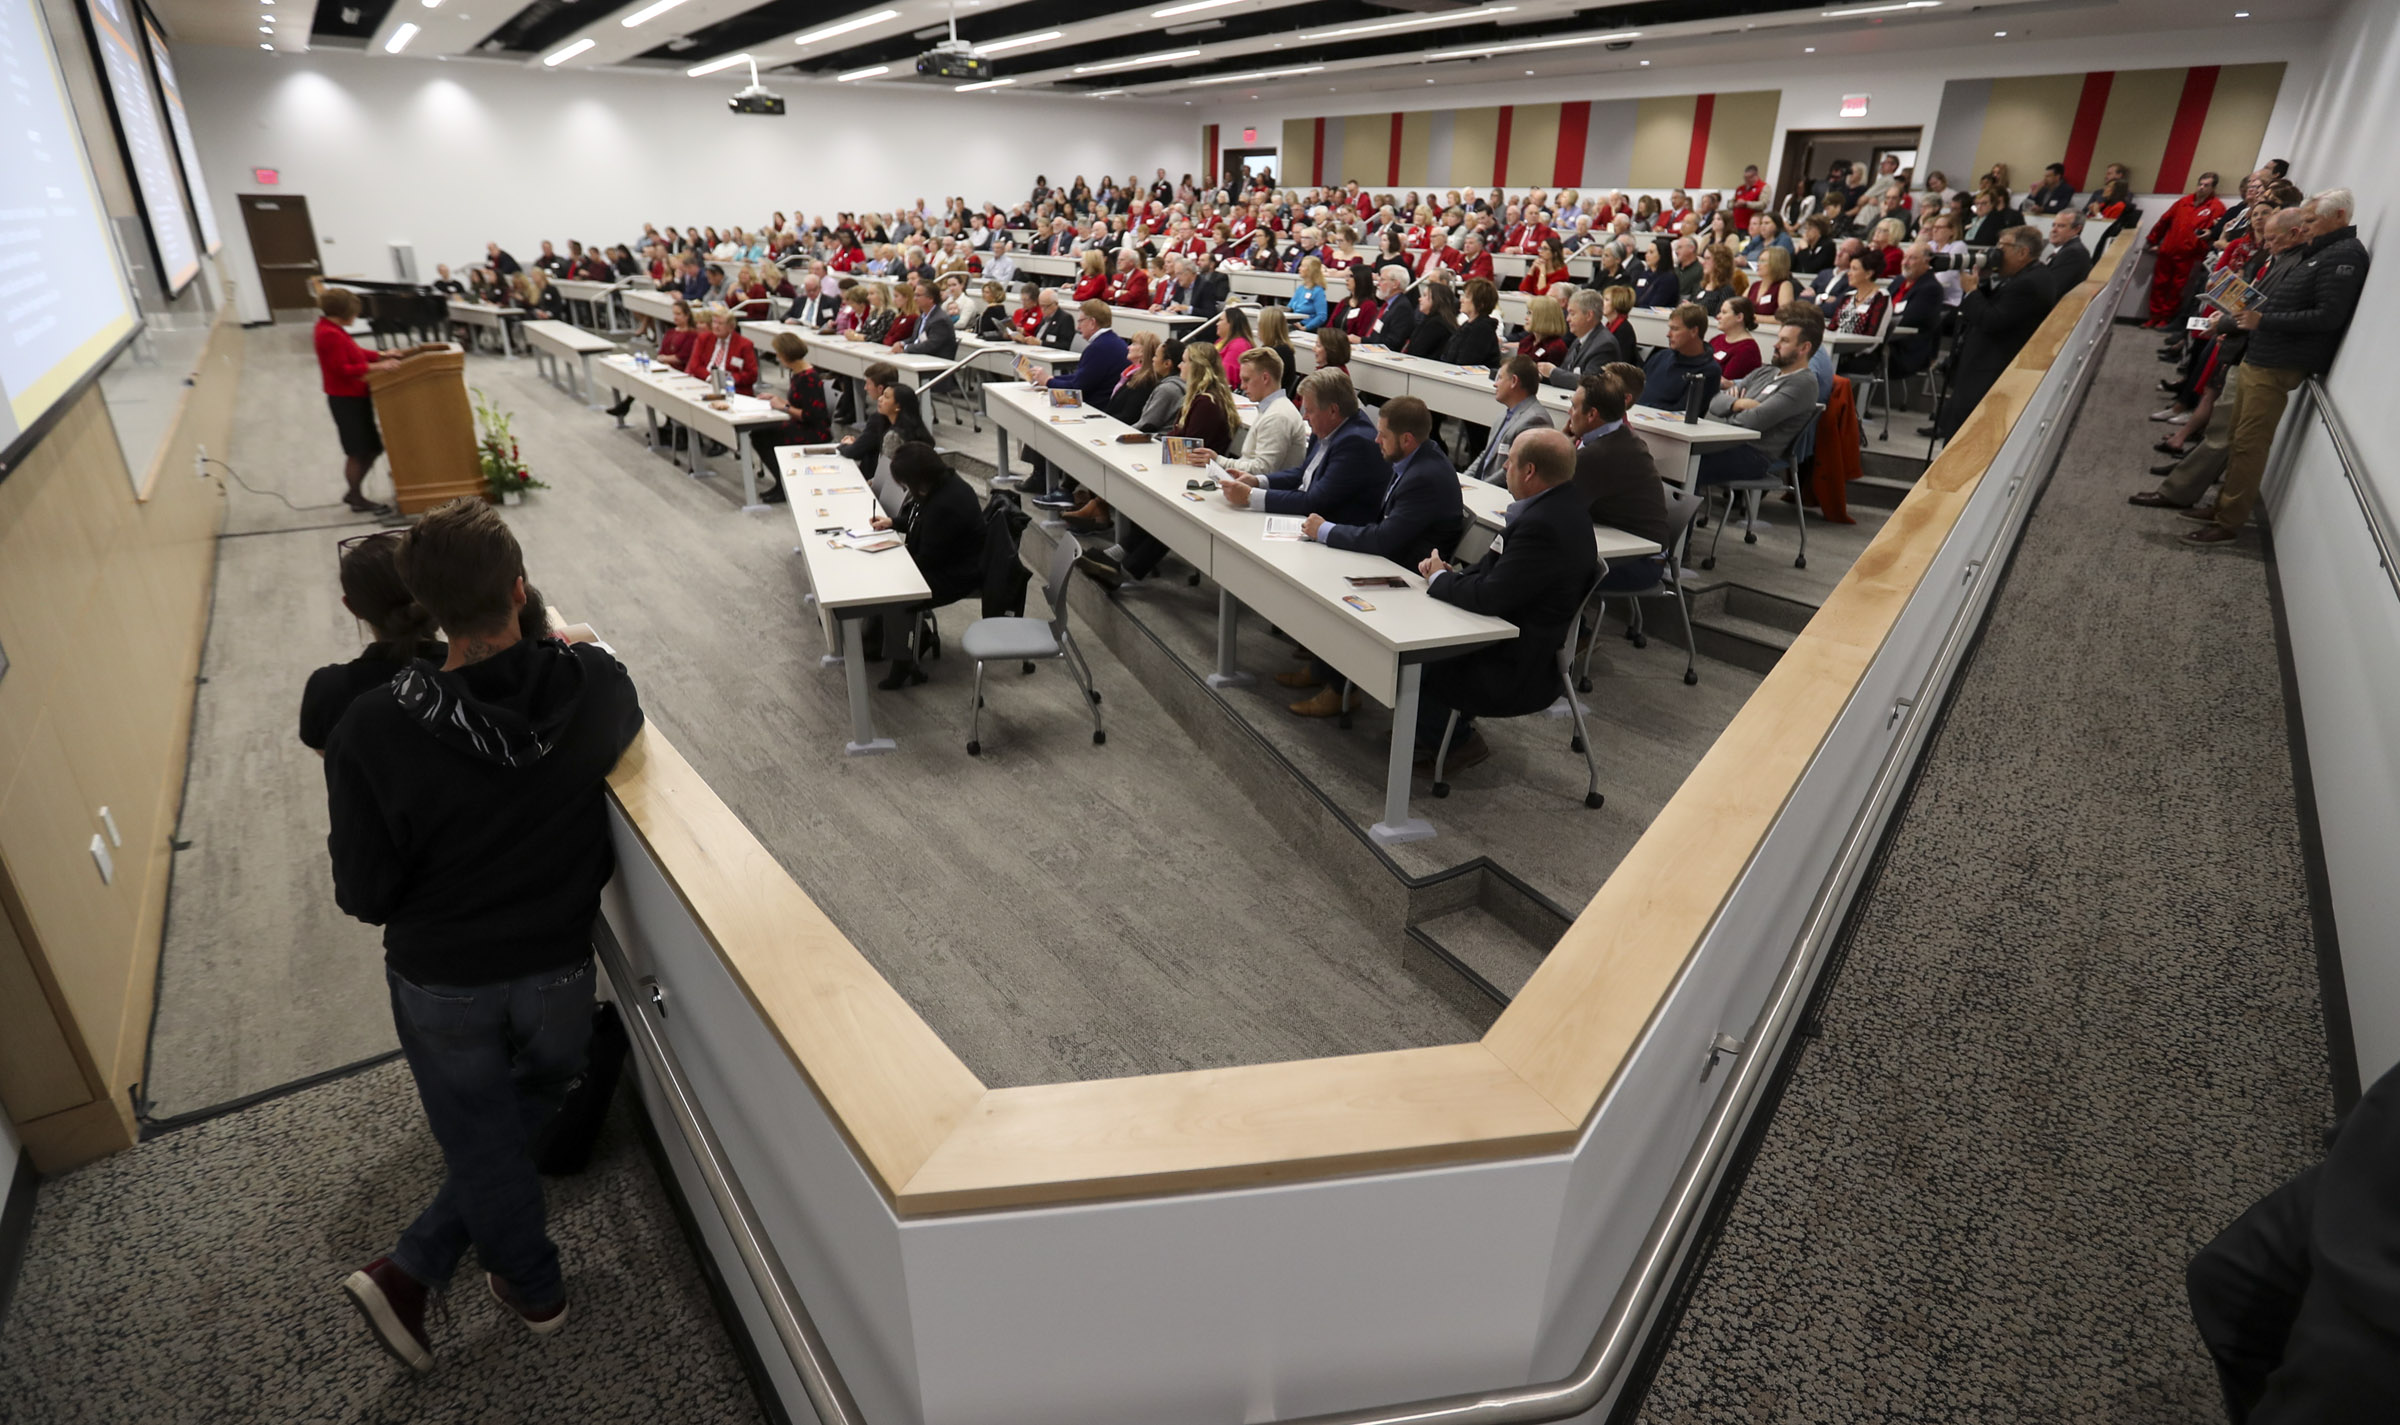 University of Utah's Gardner Commons a home to 'agents of change